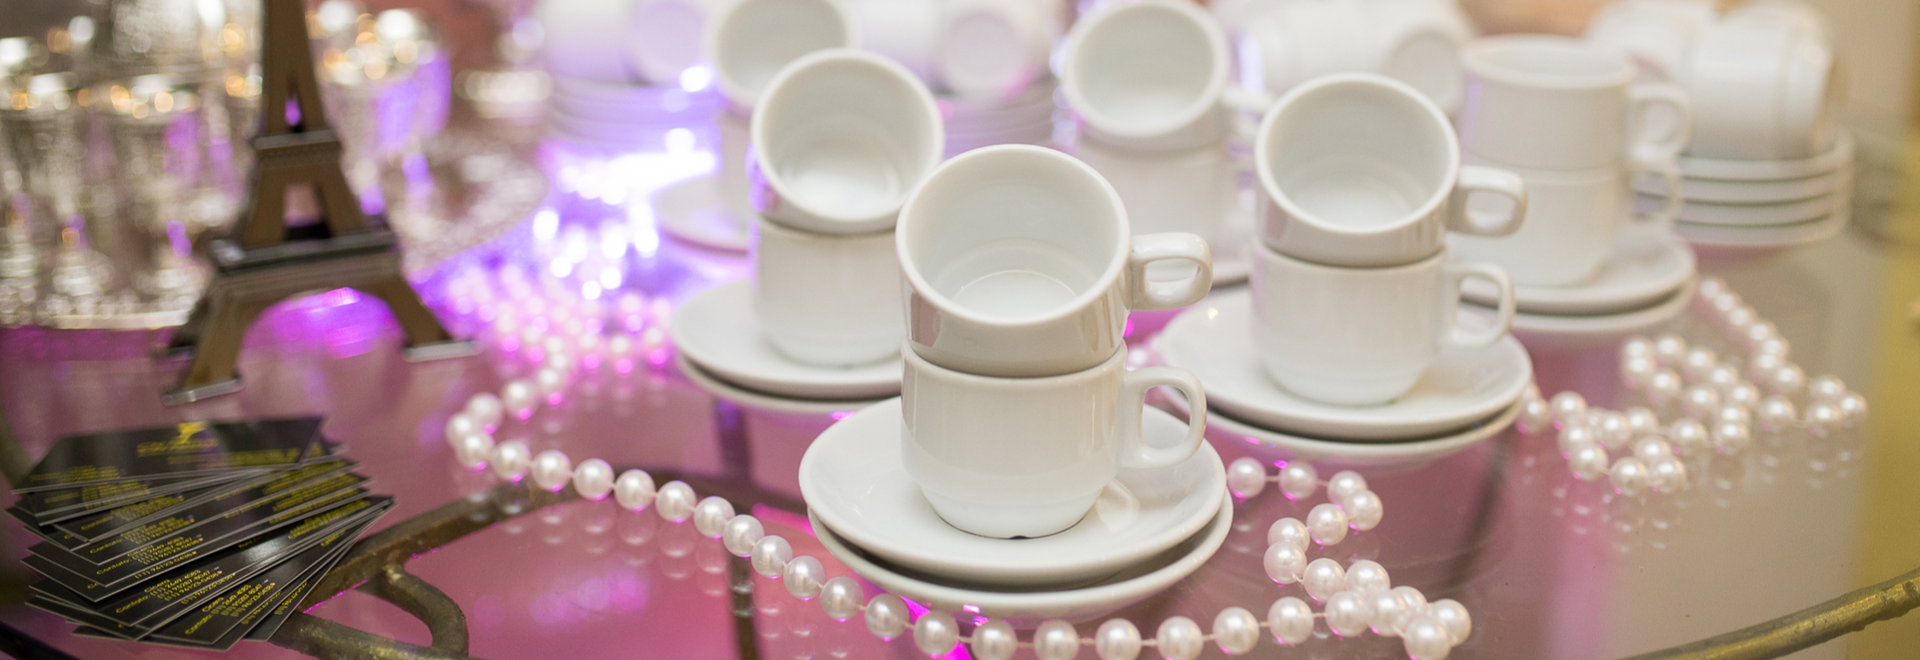 Tea cups at a party